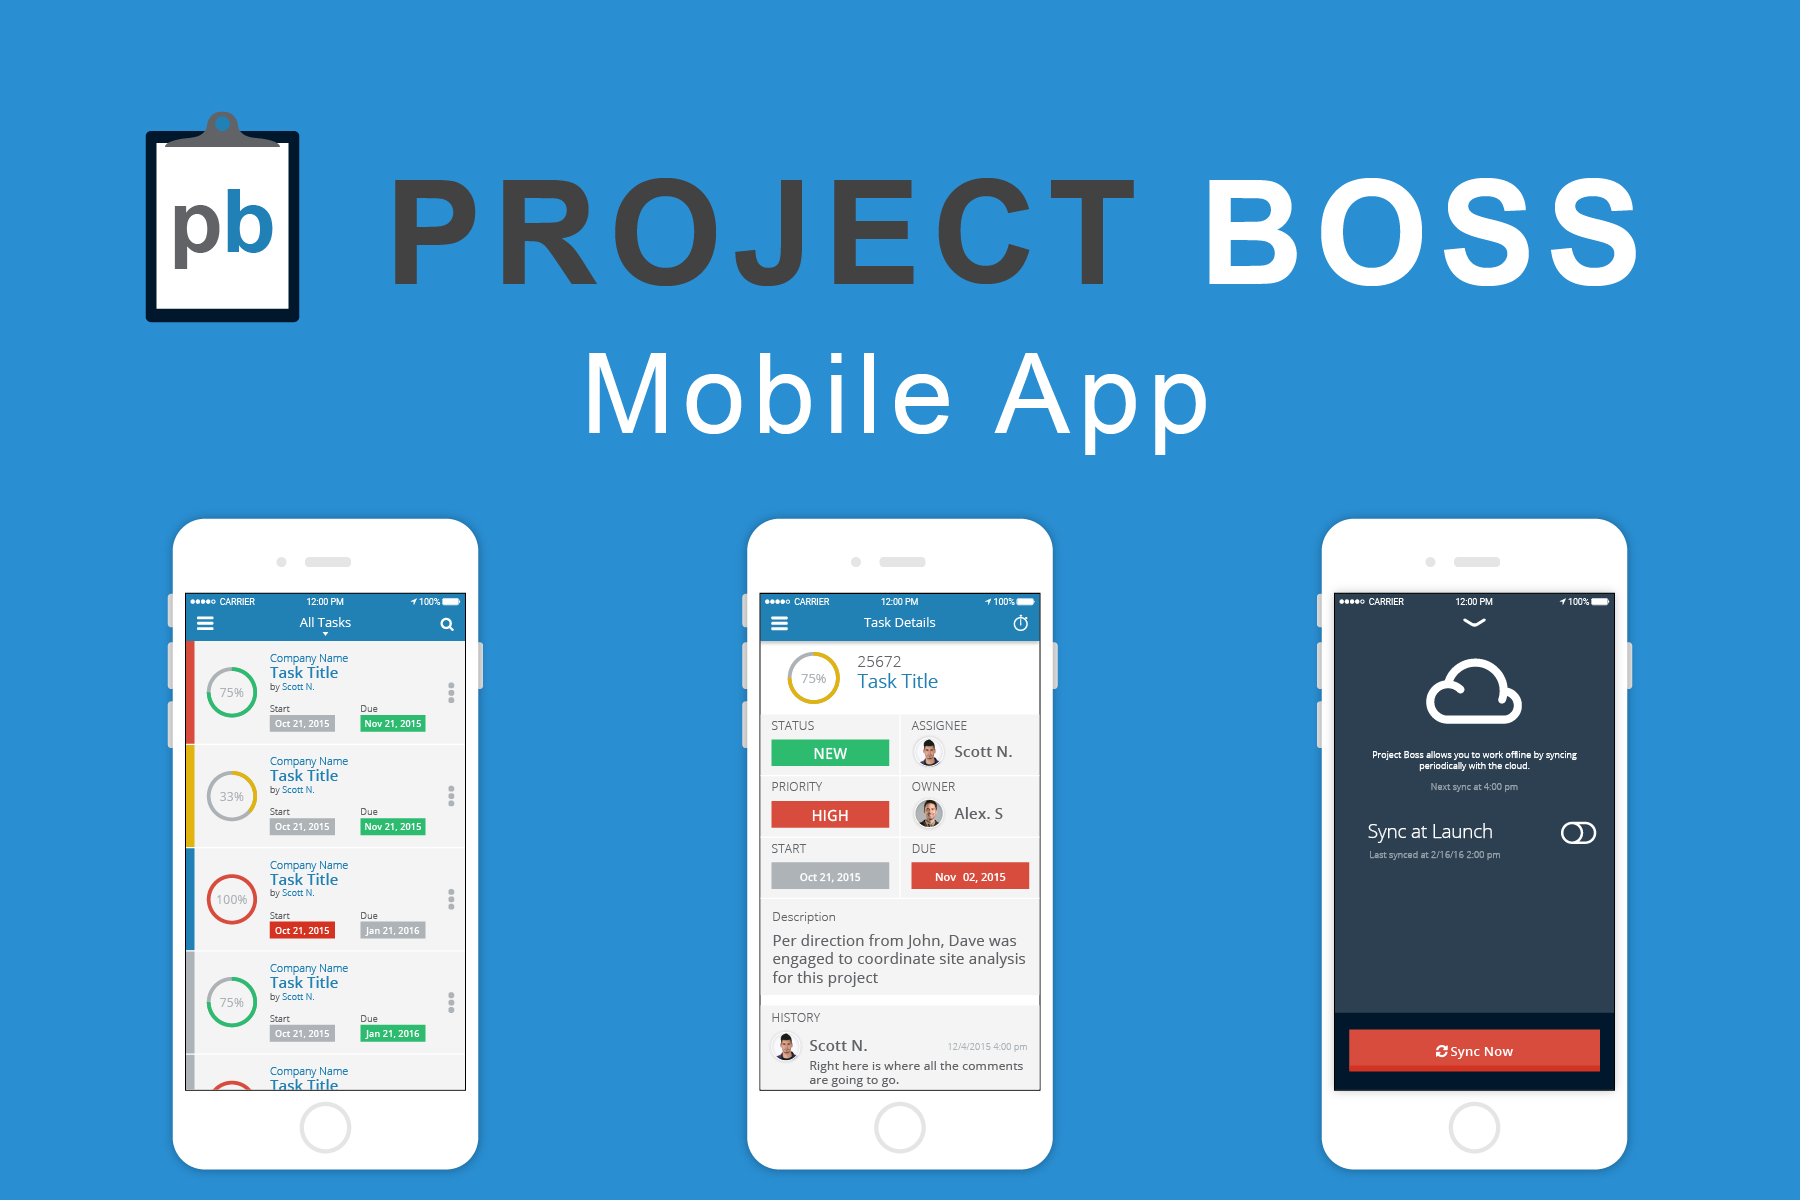 Project Boss Mobile App